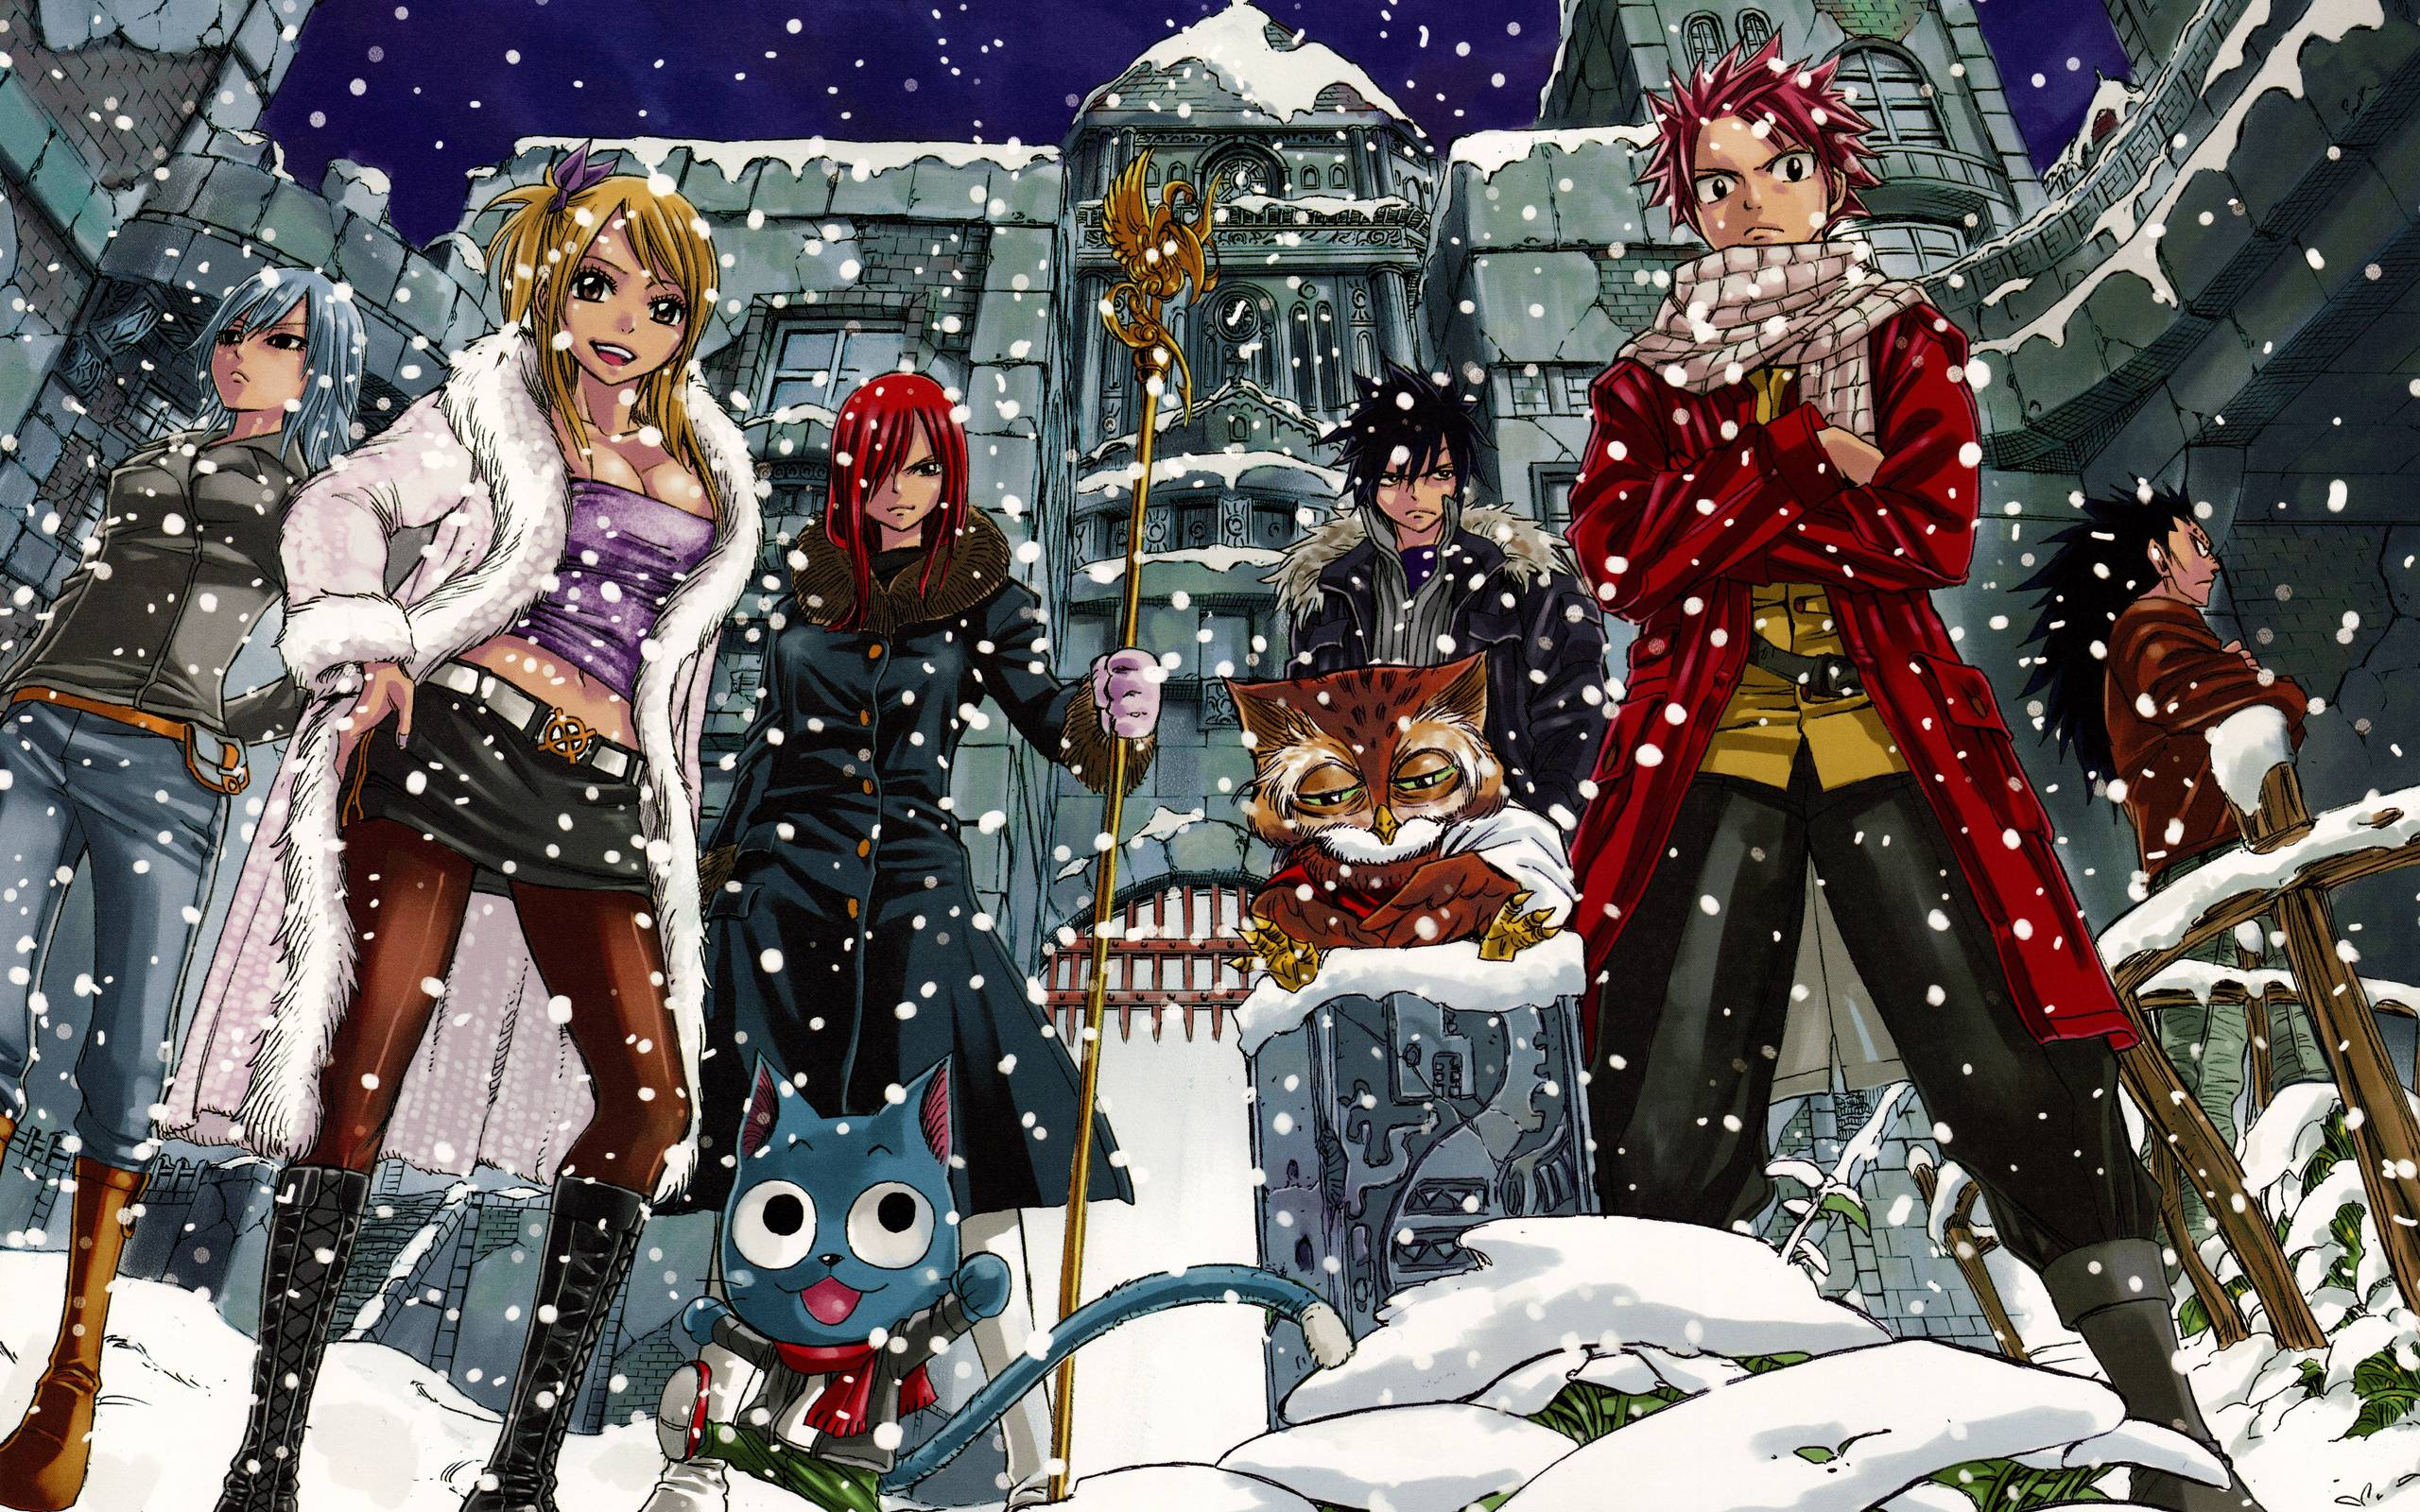 fairy tail anime christmas wallpaper - photo #11